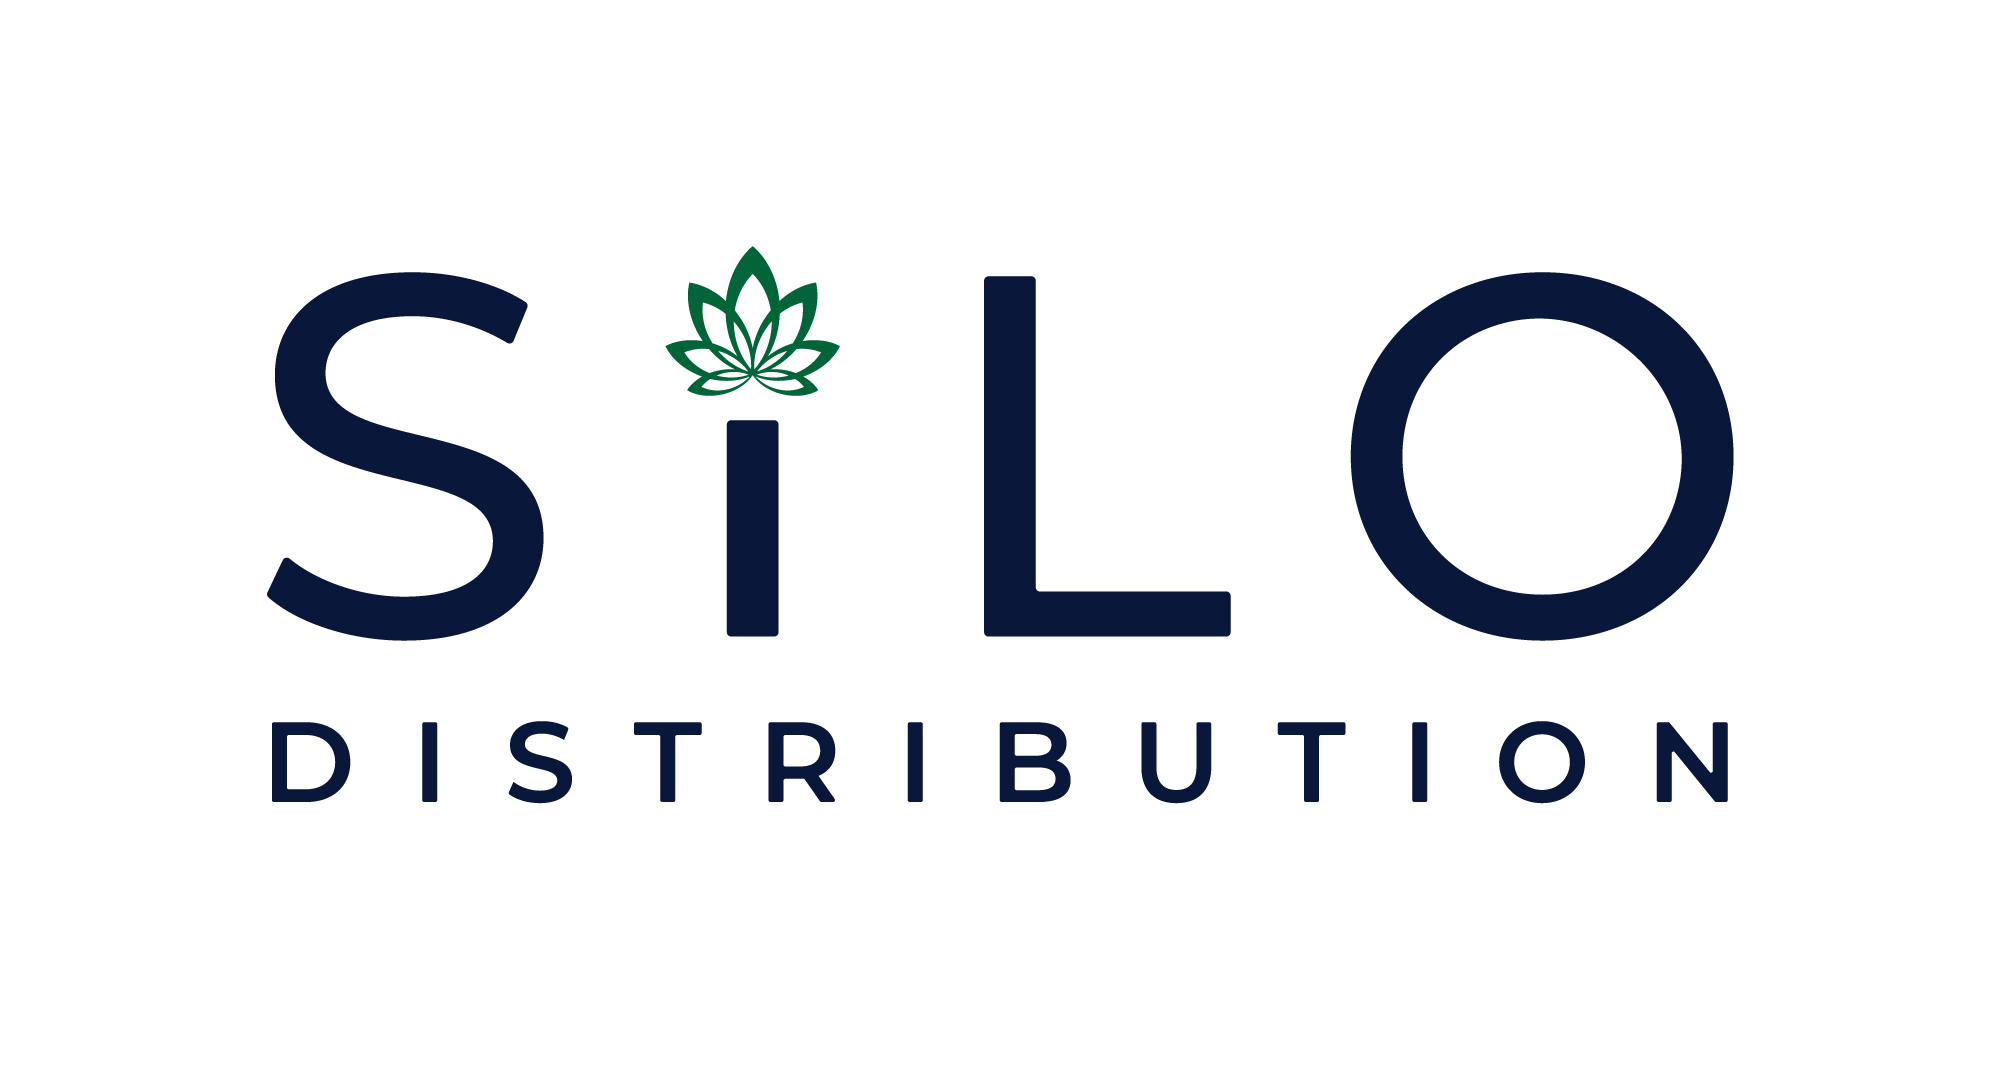 SILO Inc provides a path to the Cannabis marketplace through compliant sales, distribution and logistics provided by our in-house experts.